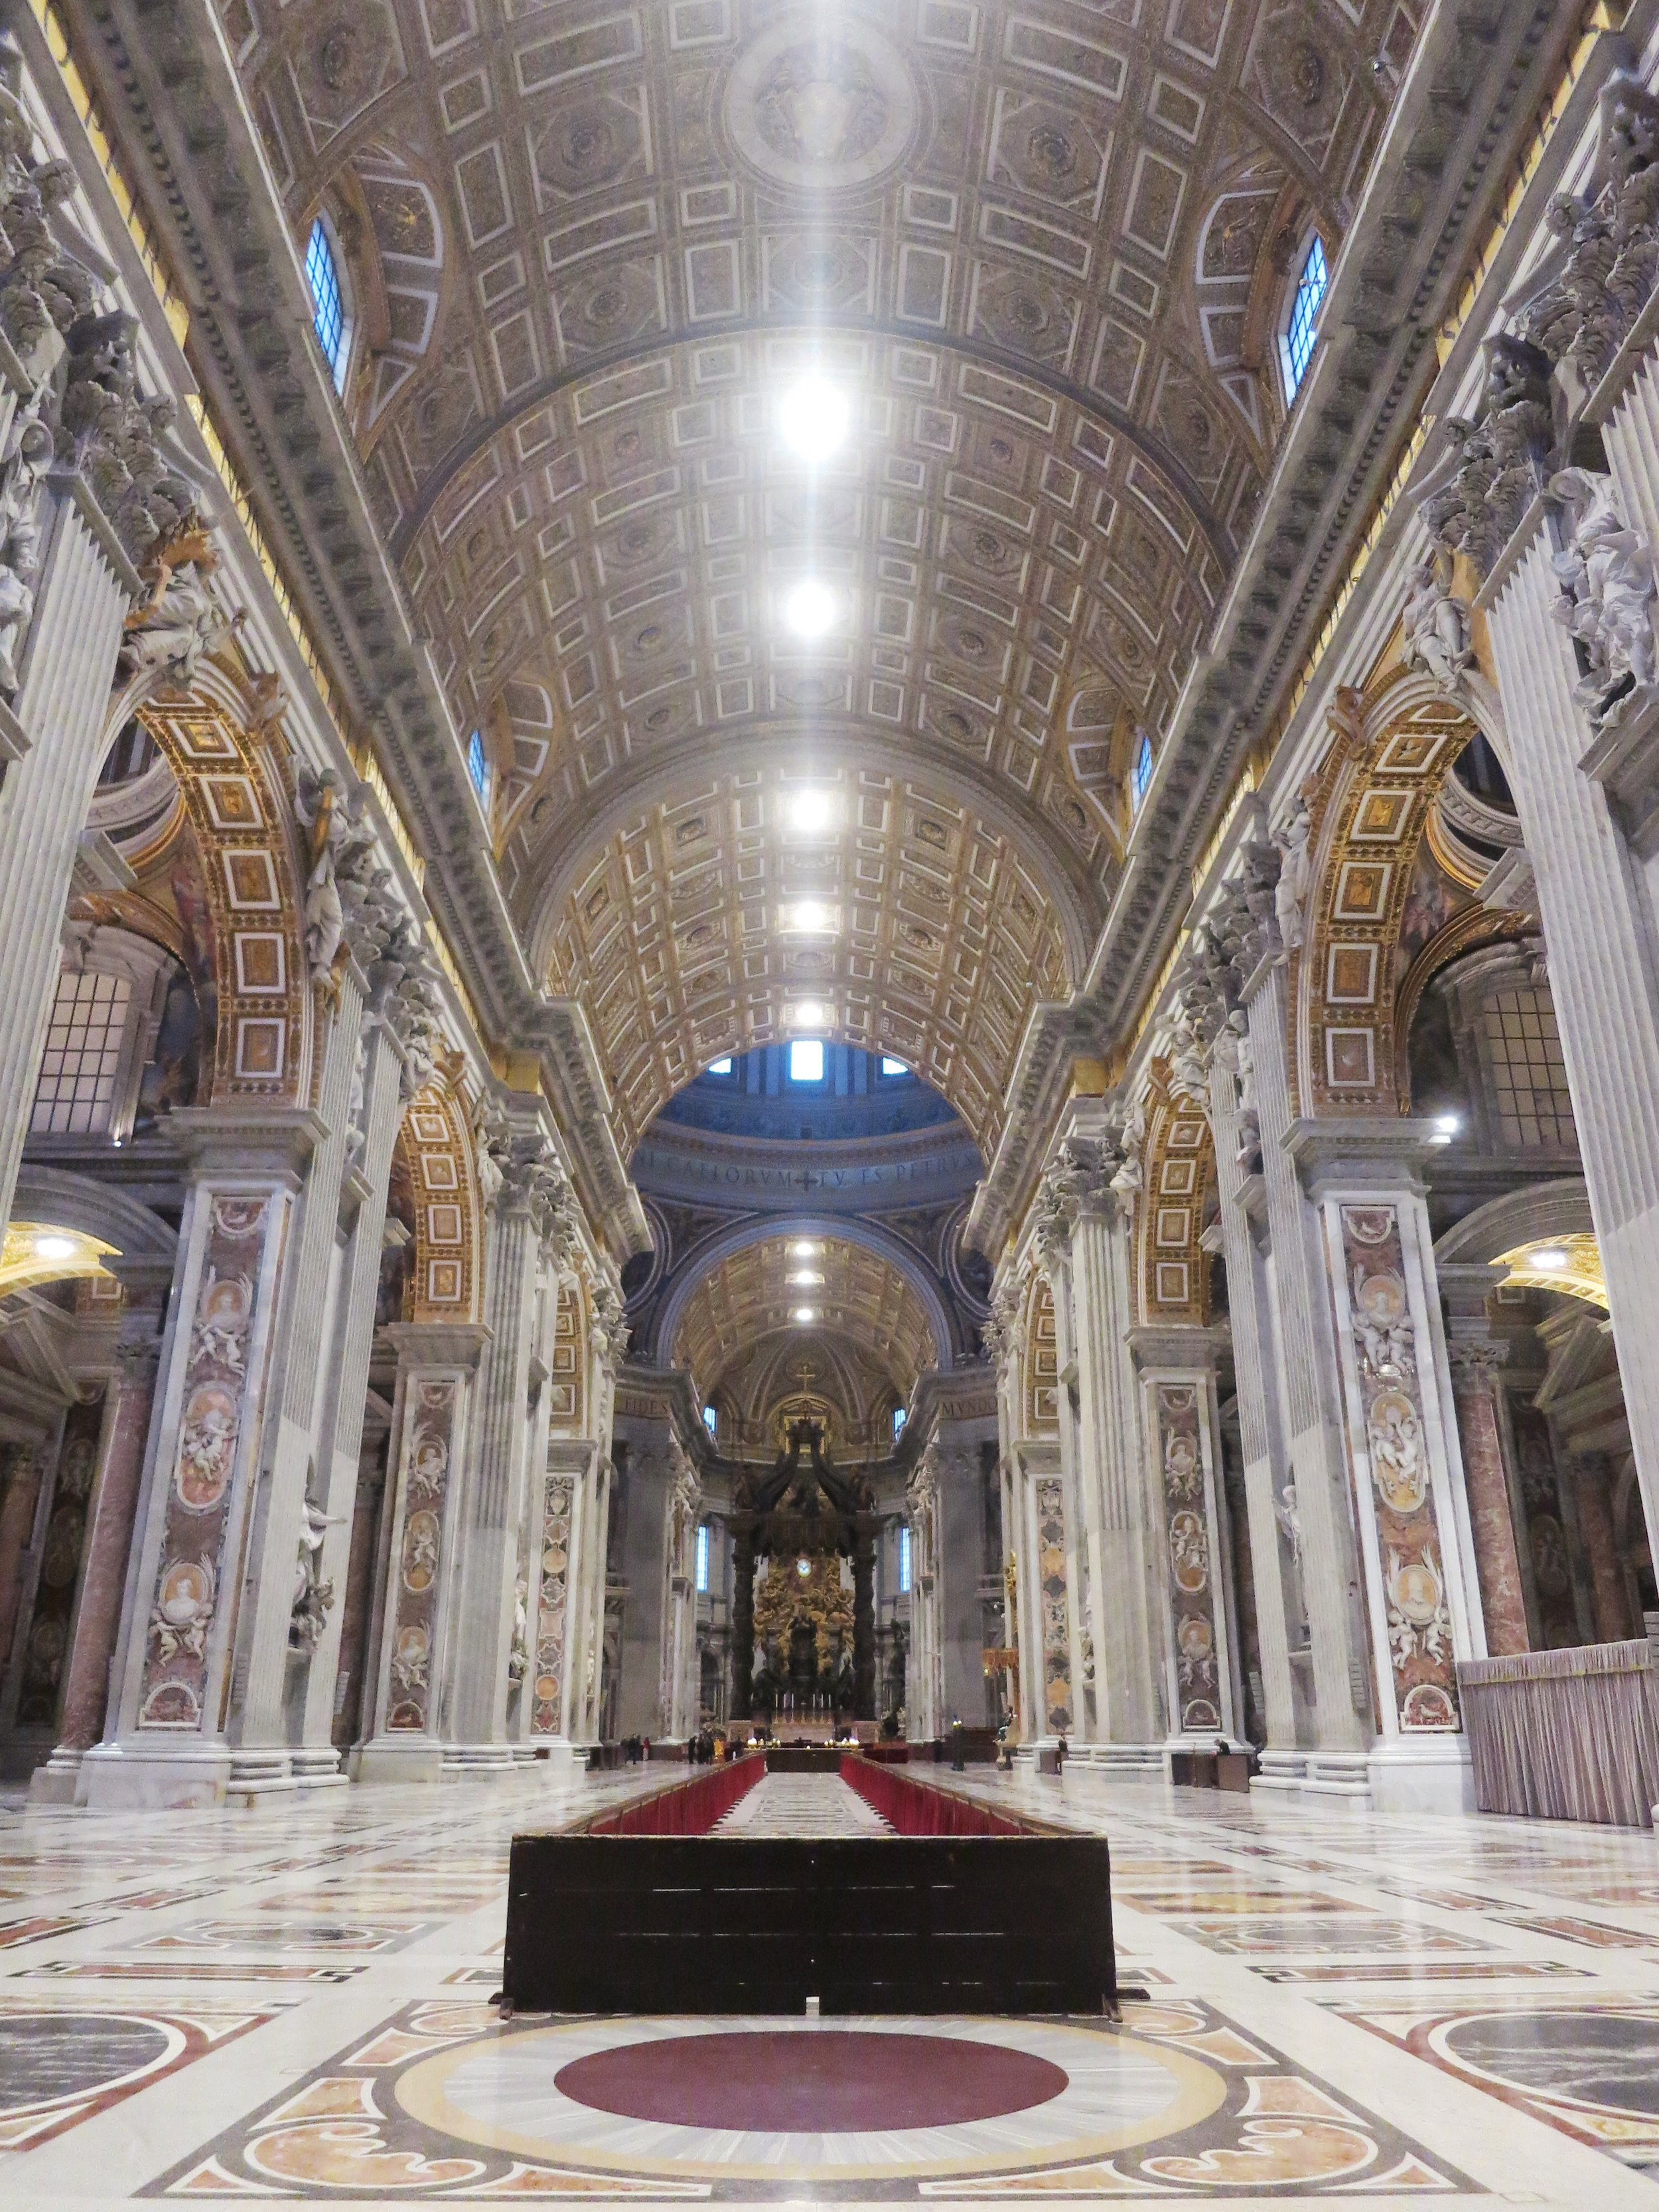 A visit to St. Peter's Basilica just as it opens for the day.